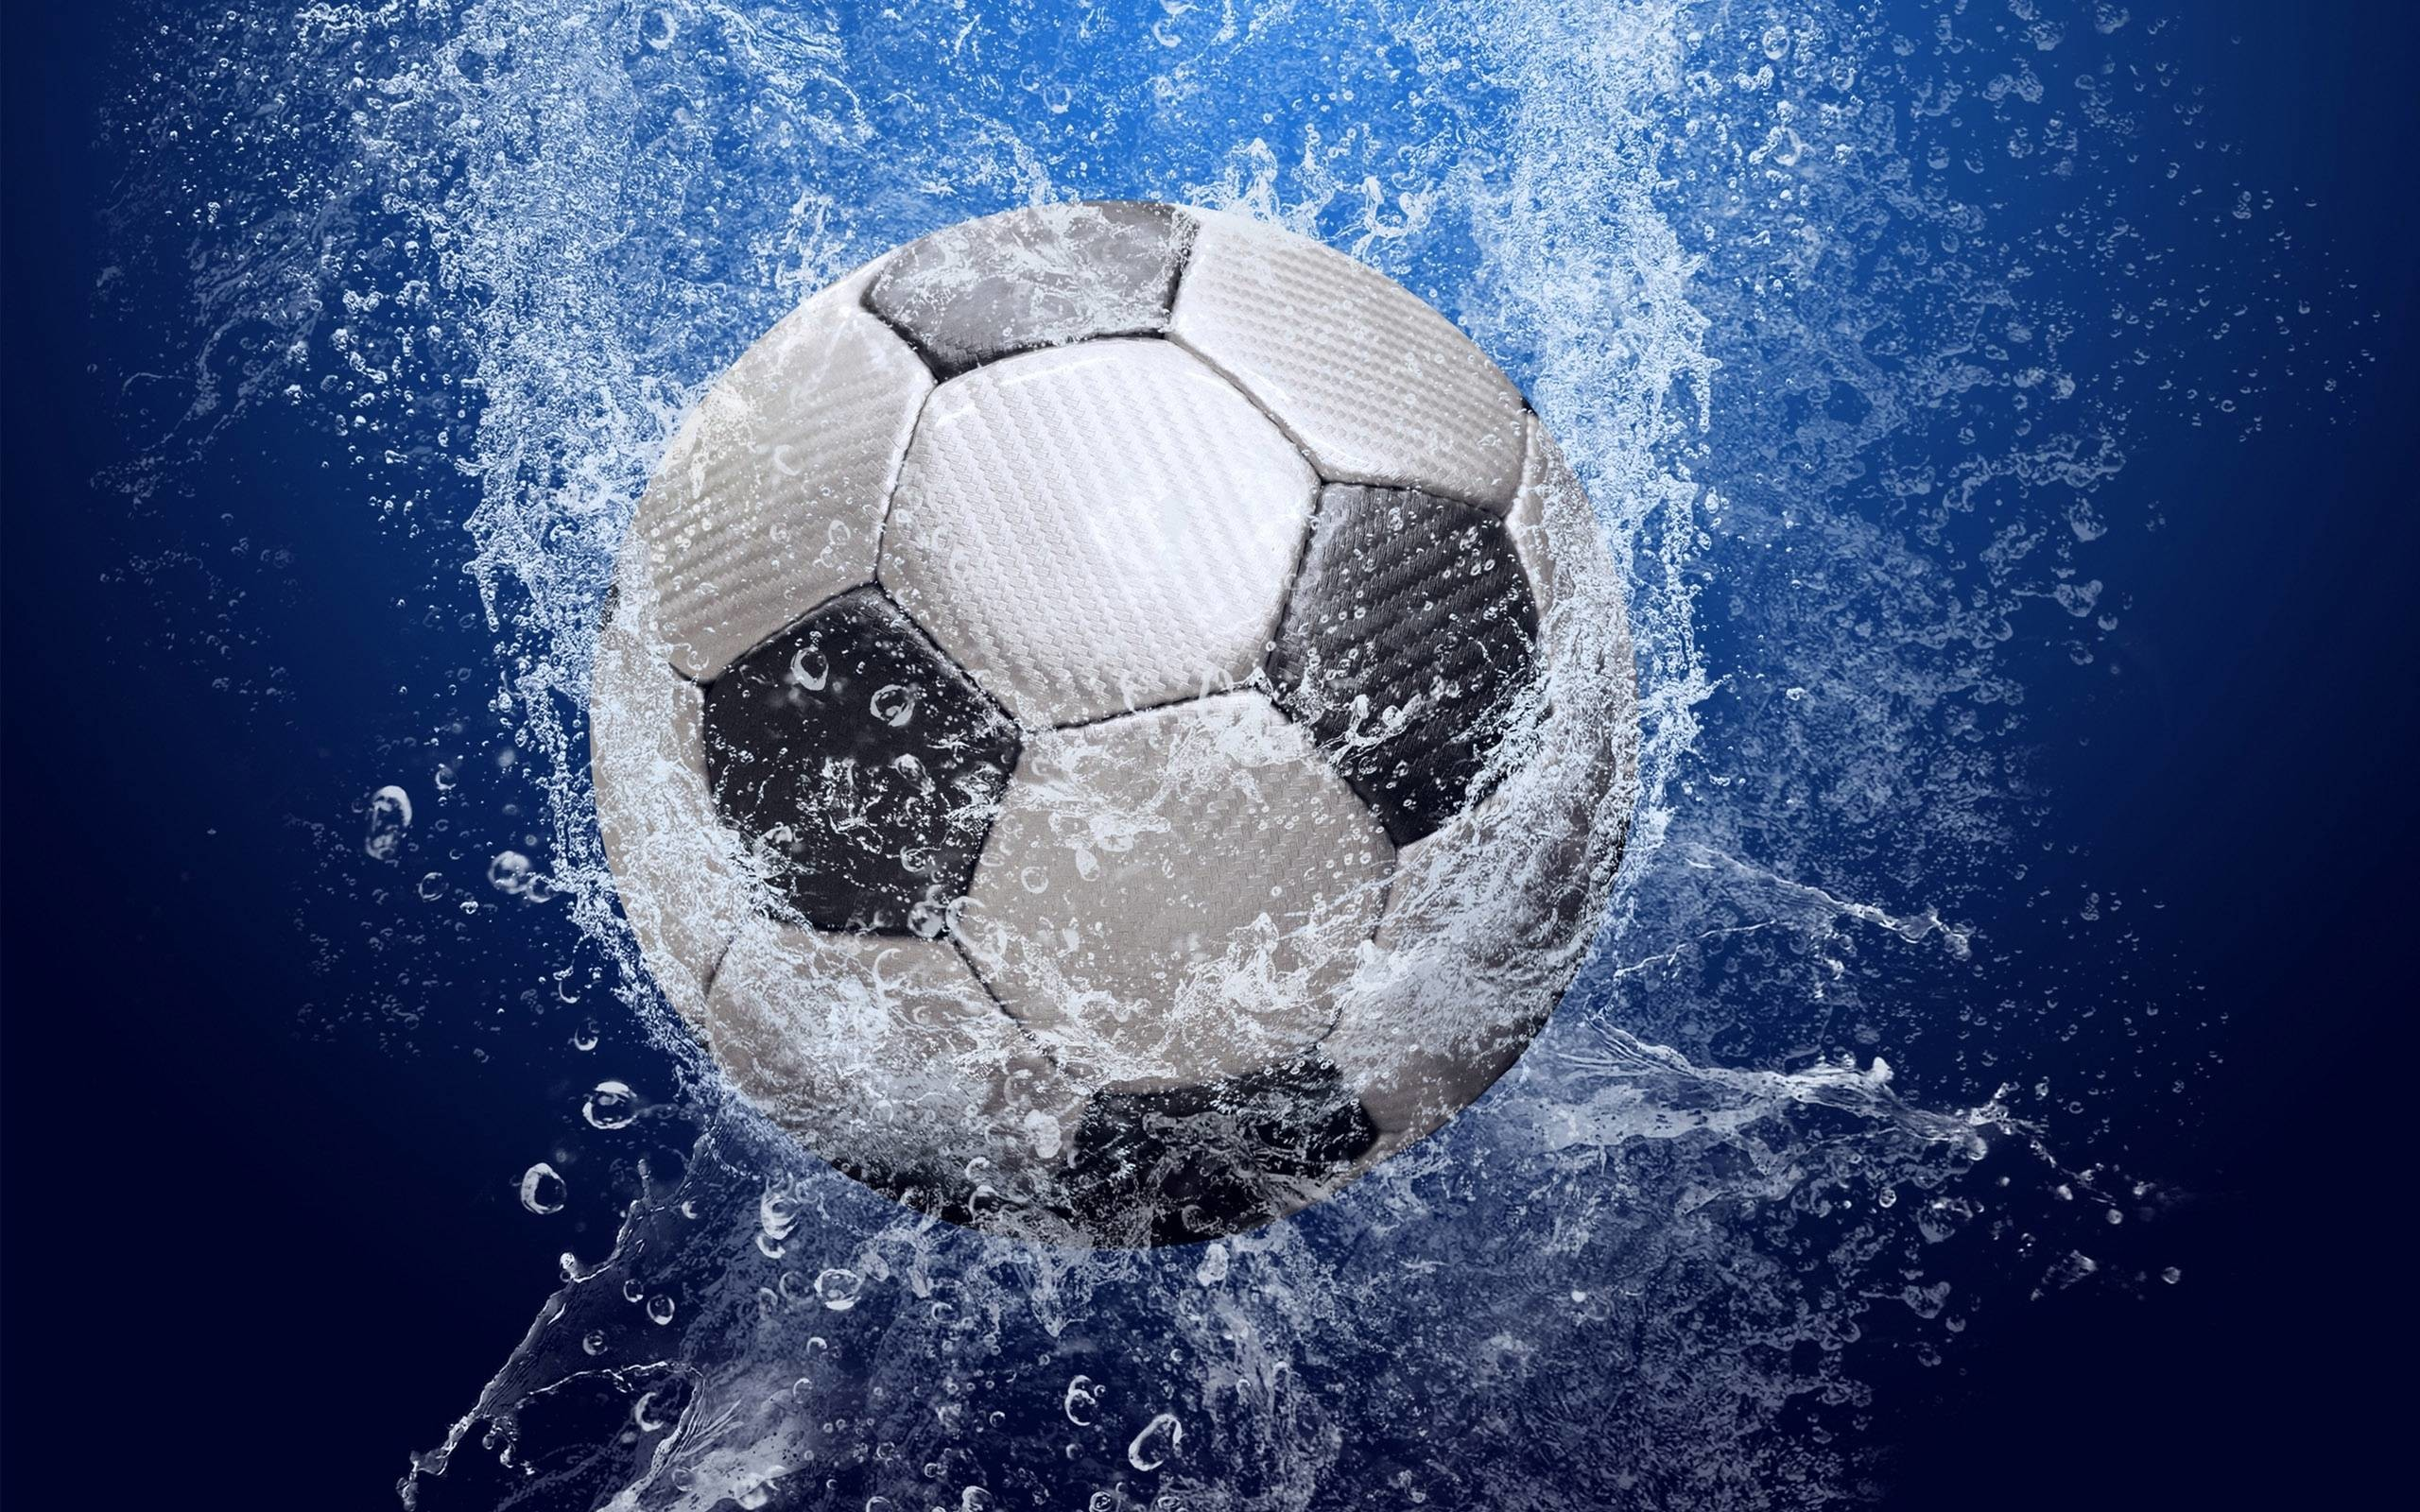 2560x1600 Soccer Ball Wallpaper Hd Background Wallpaper 44 HD Wallpapers .